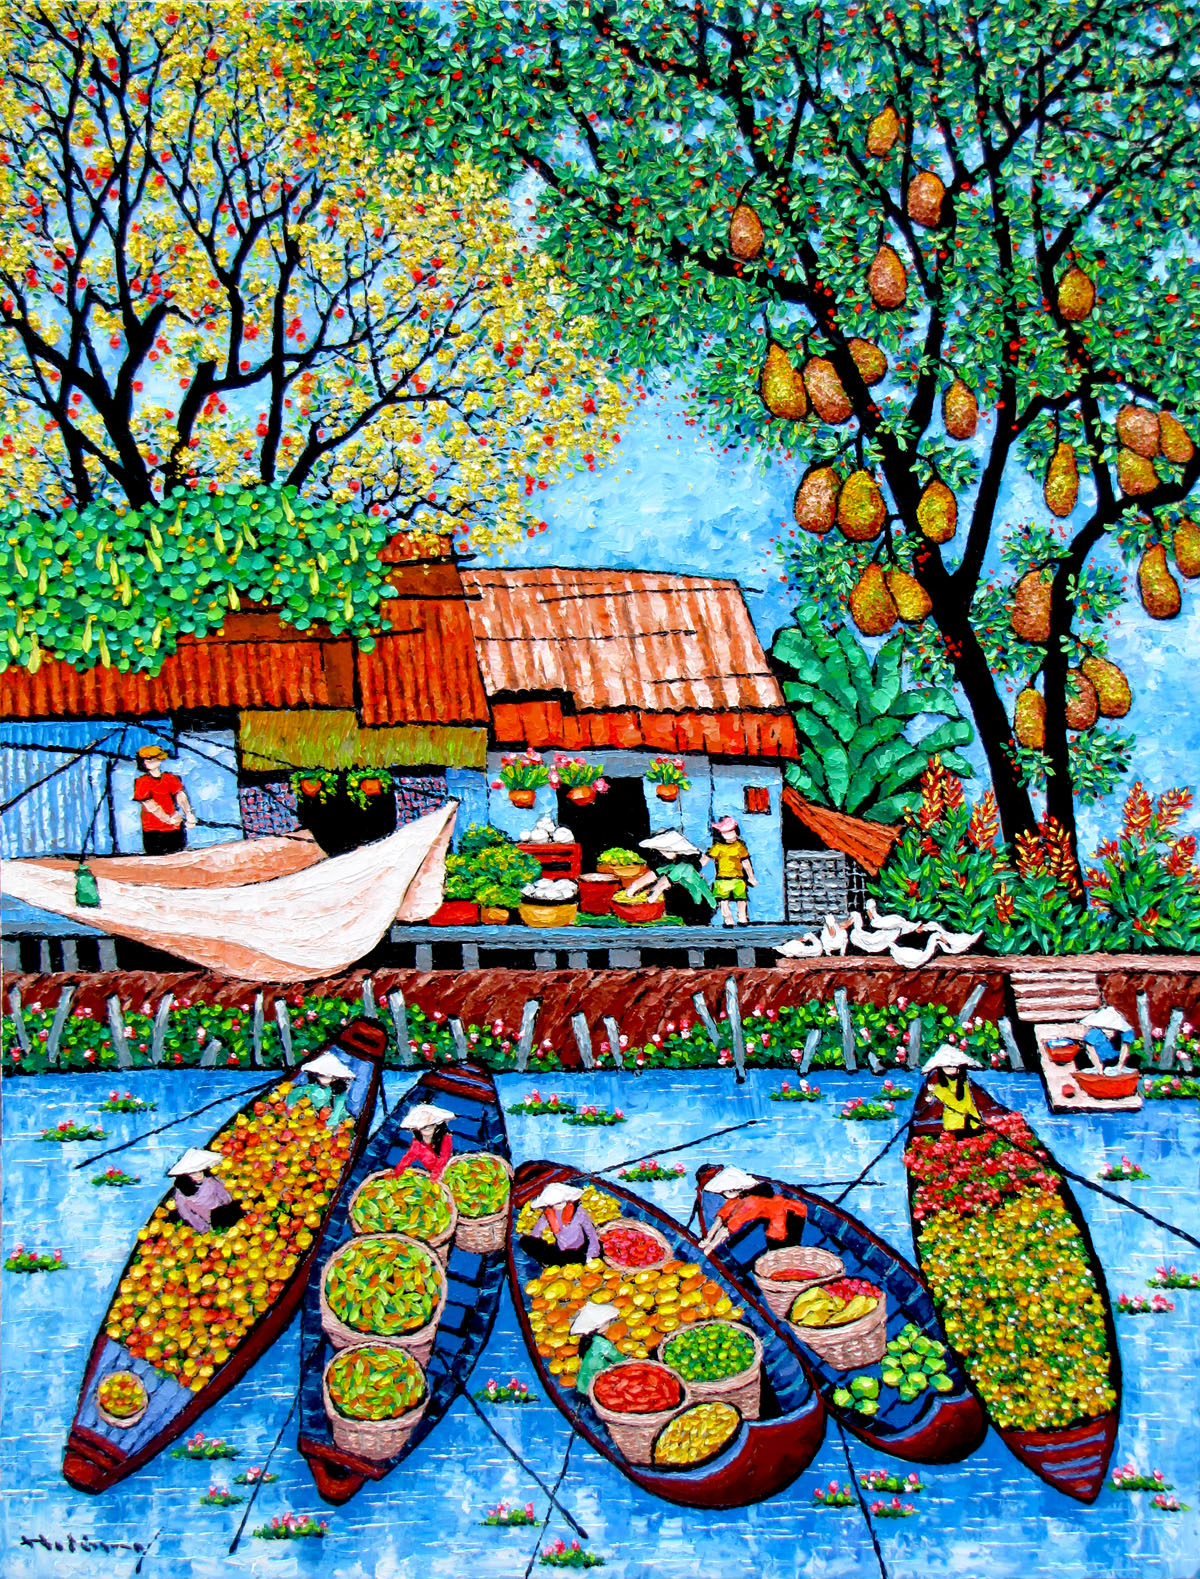 Tran Thu Huong-By the river-110x130cm